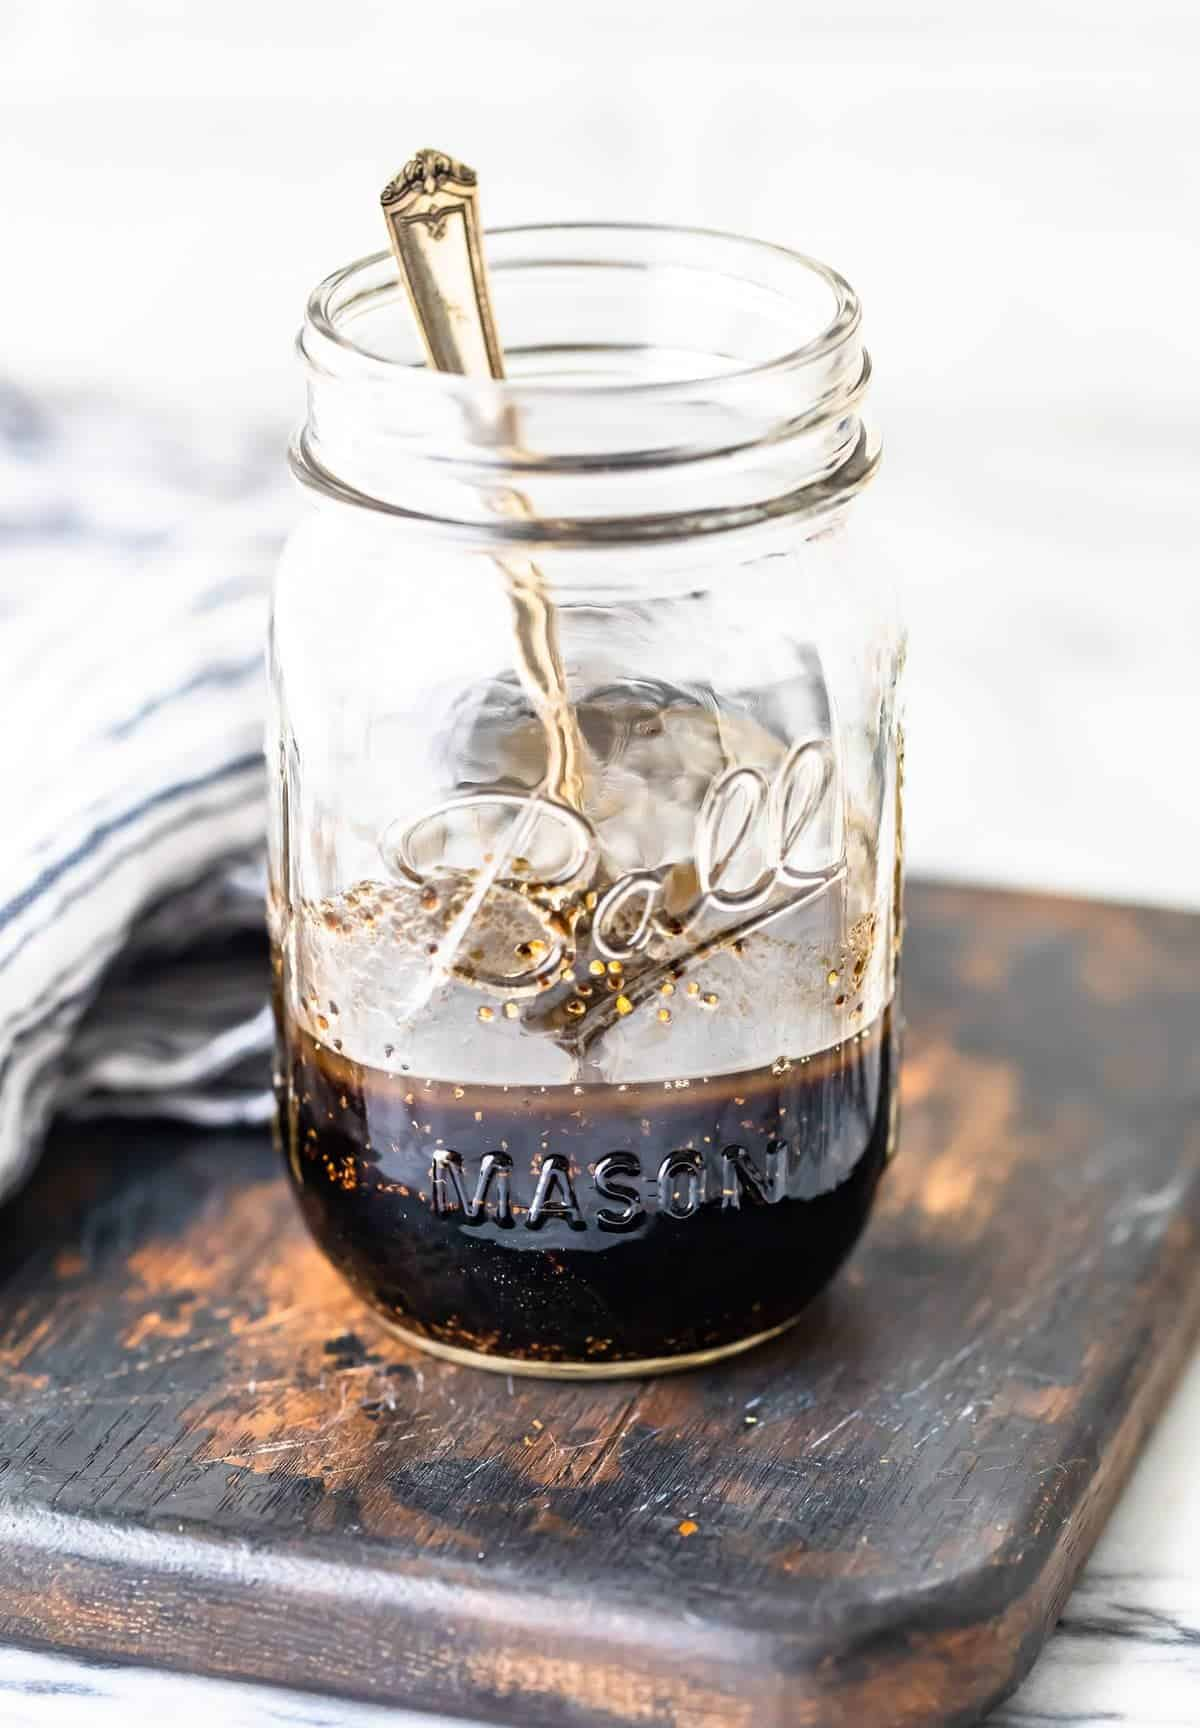 Balsamic Chicken Marinade in a jar